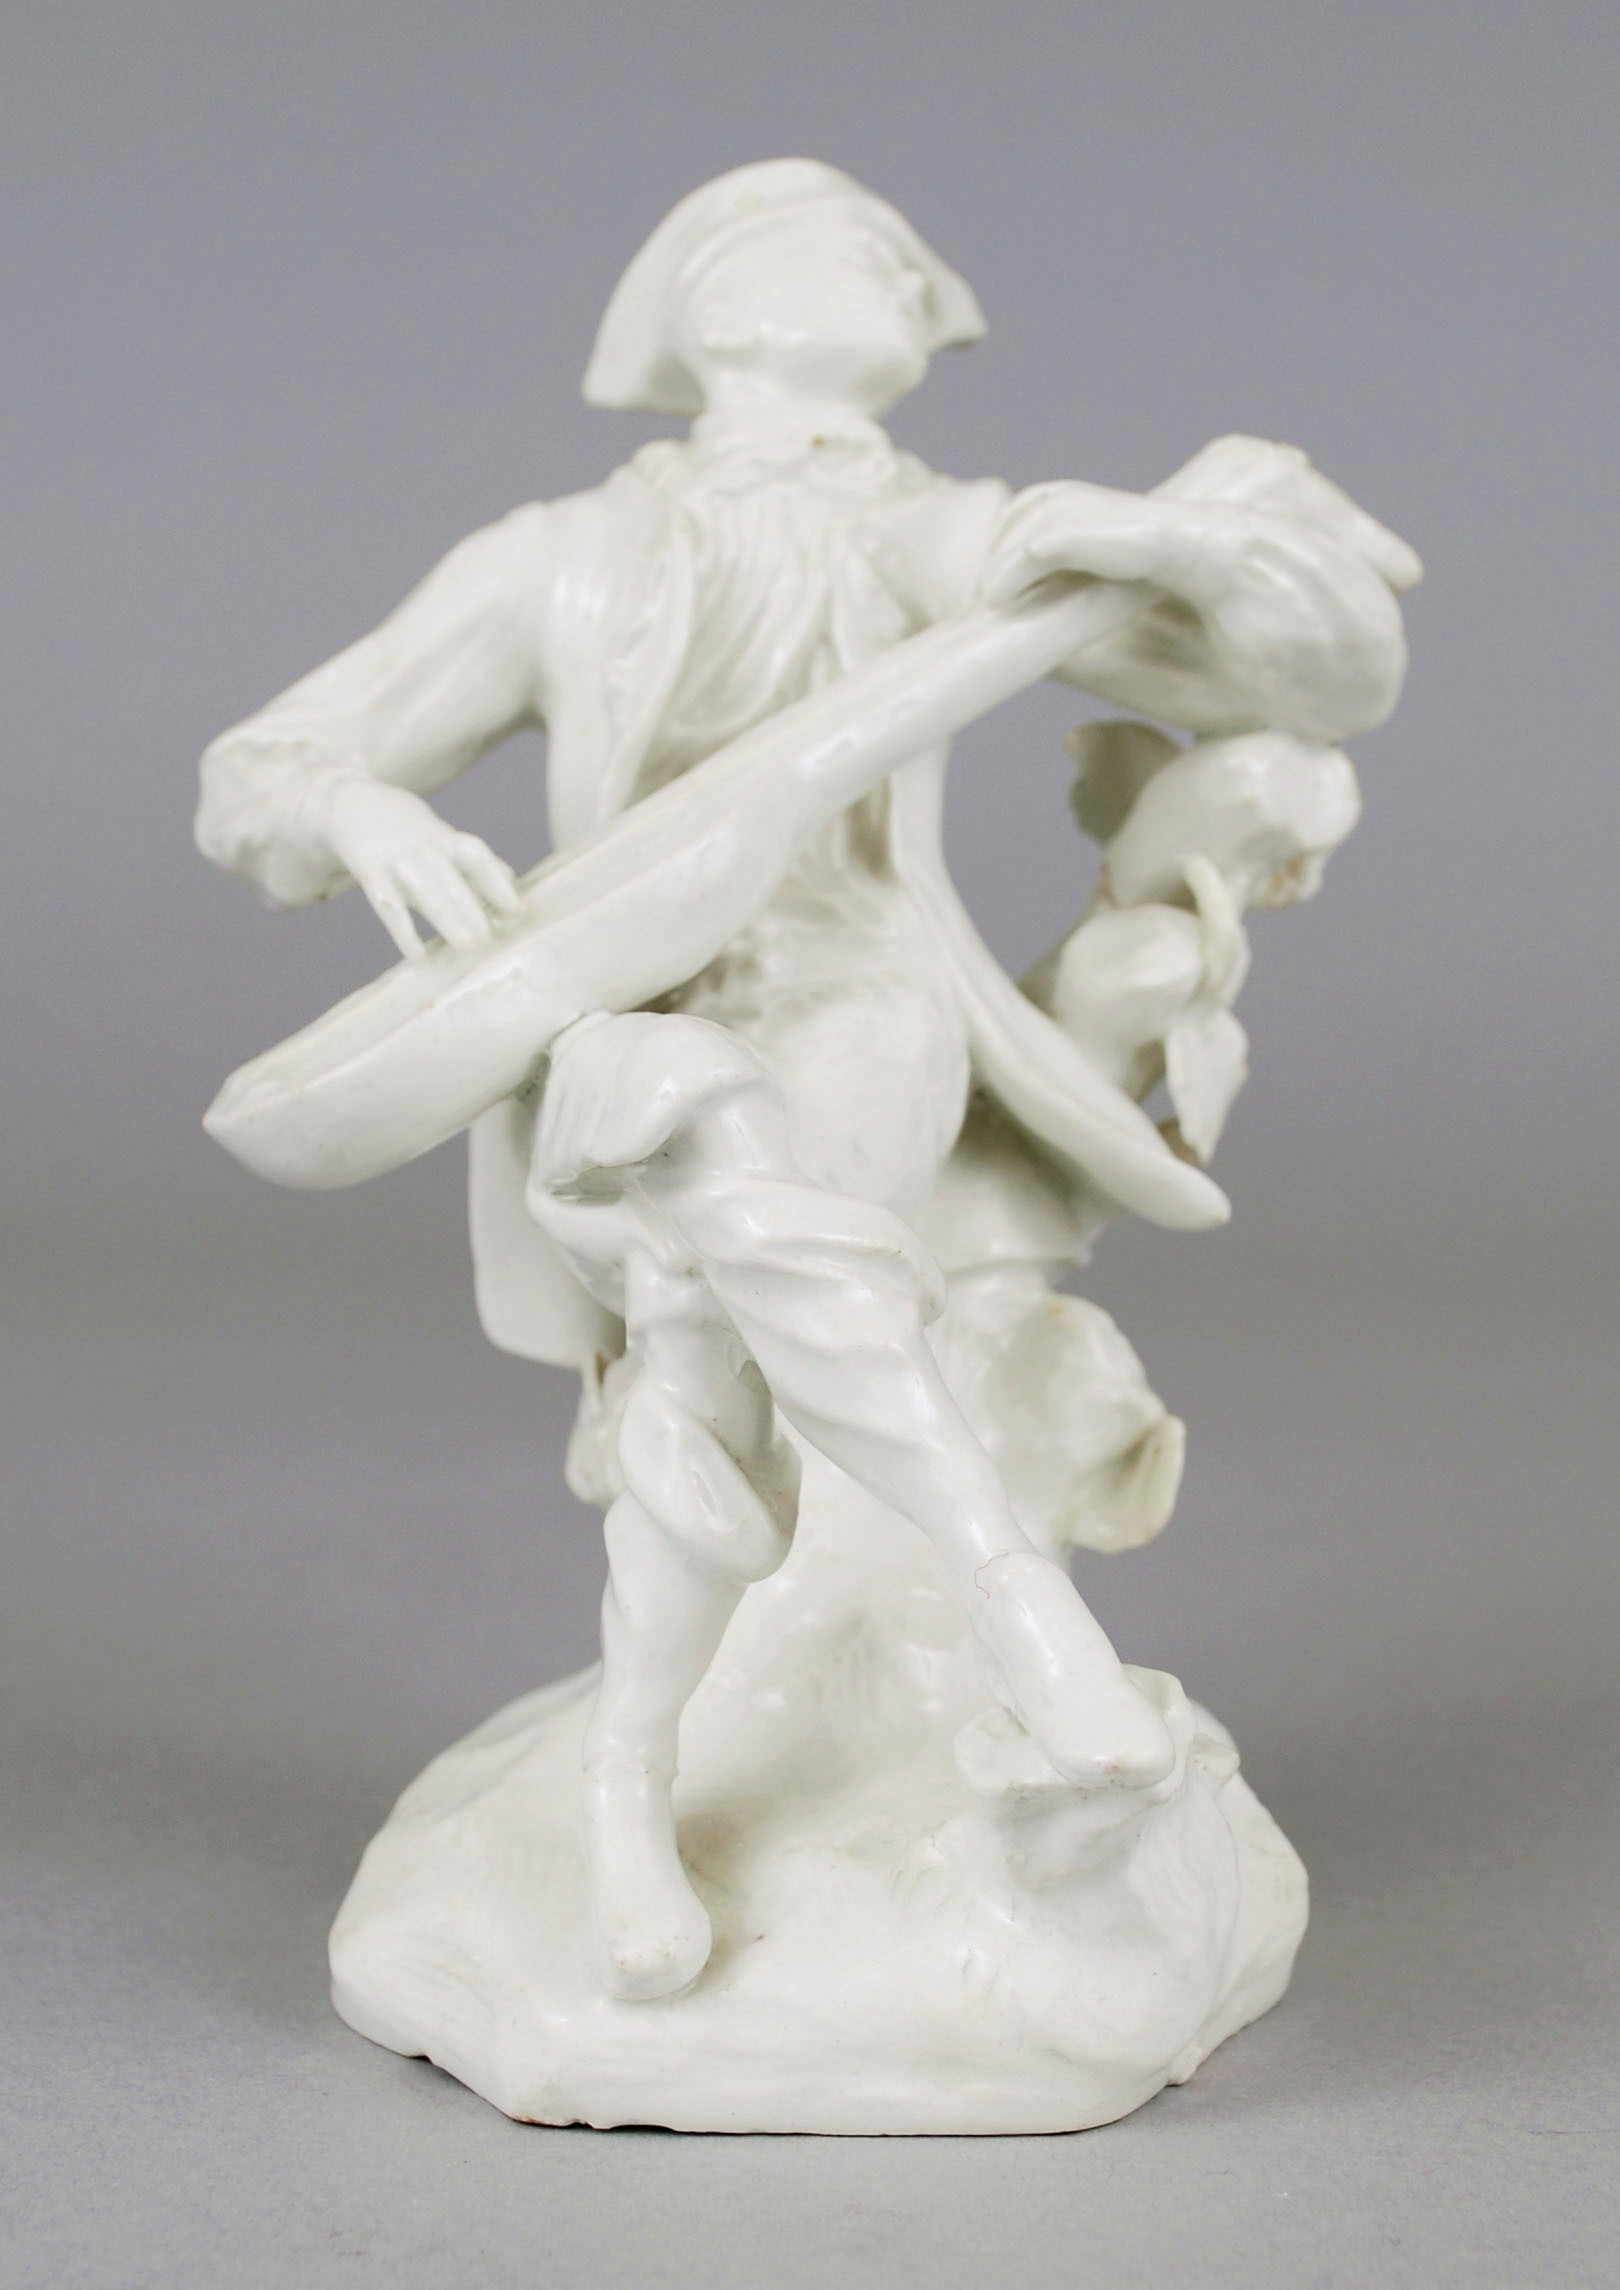 White porcelain figure of a seated man playing the mandolin, seated on a tree stump with flowery branch on molded, rocky base, his legs crossed and his head turned to one side as though singing, wearing 18th century garb and hat.